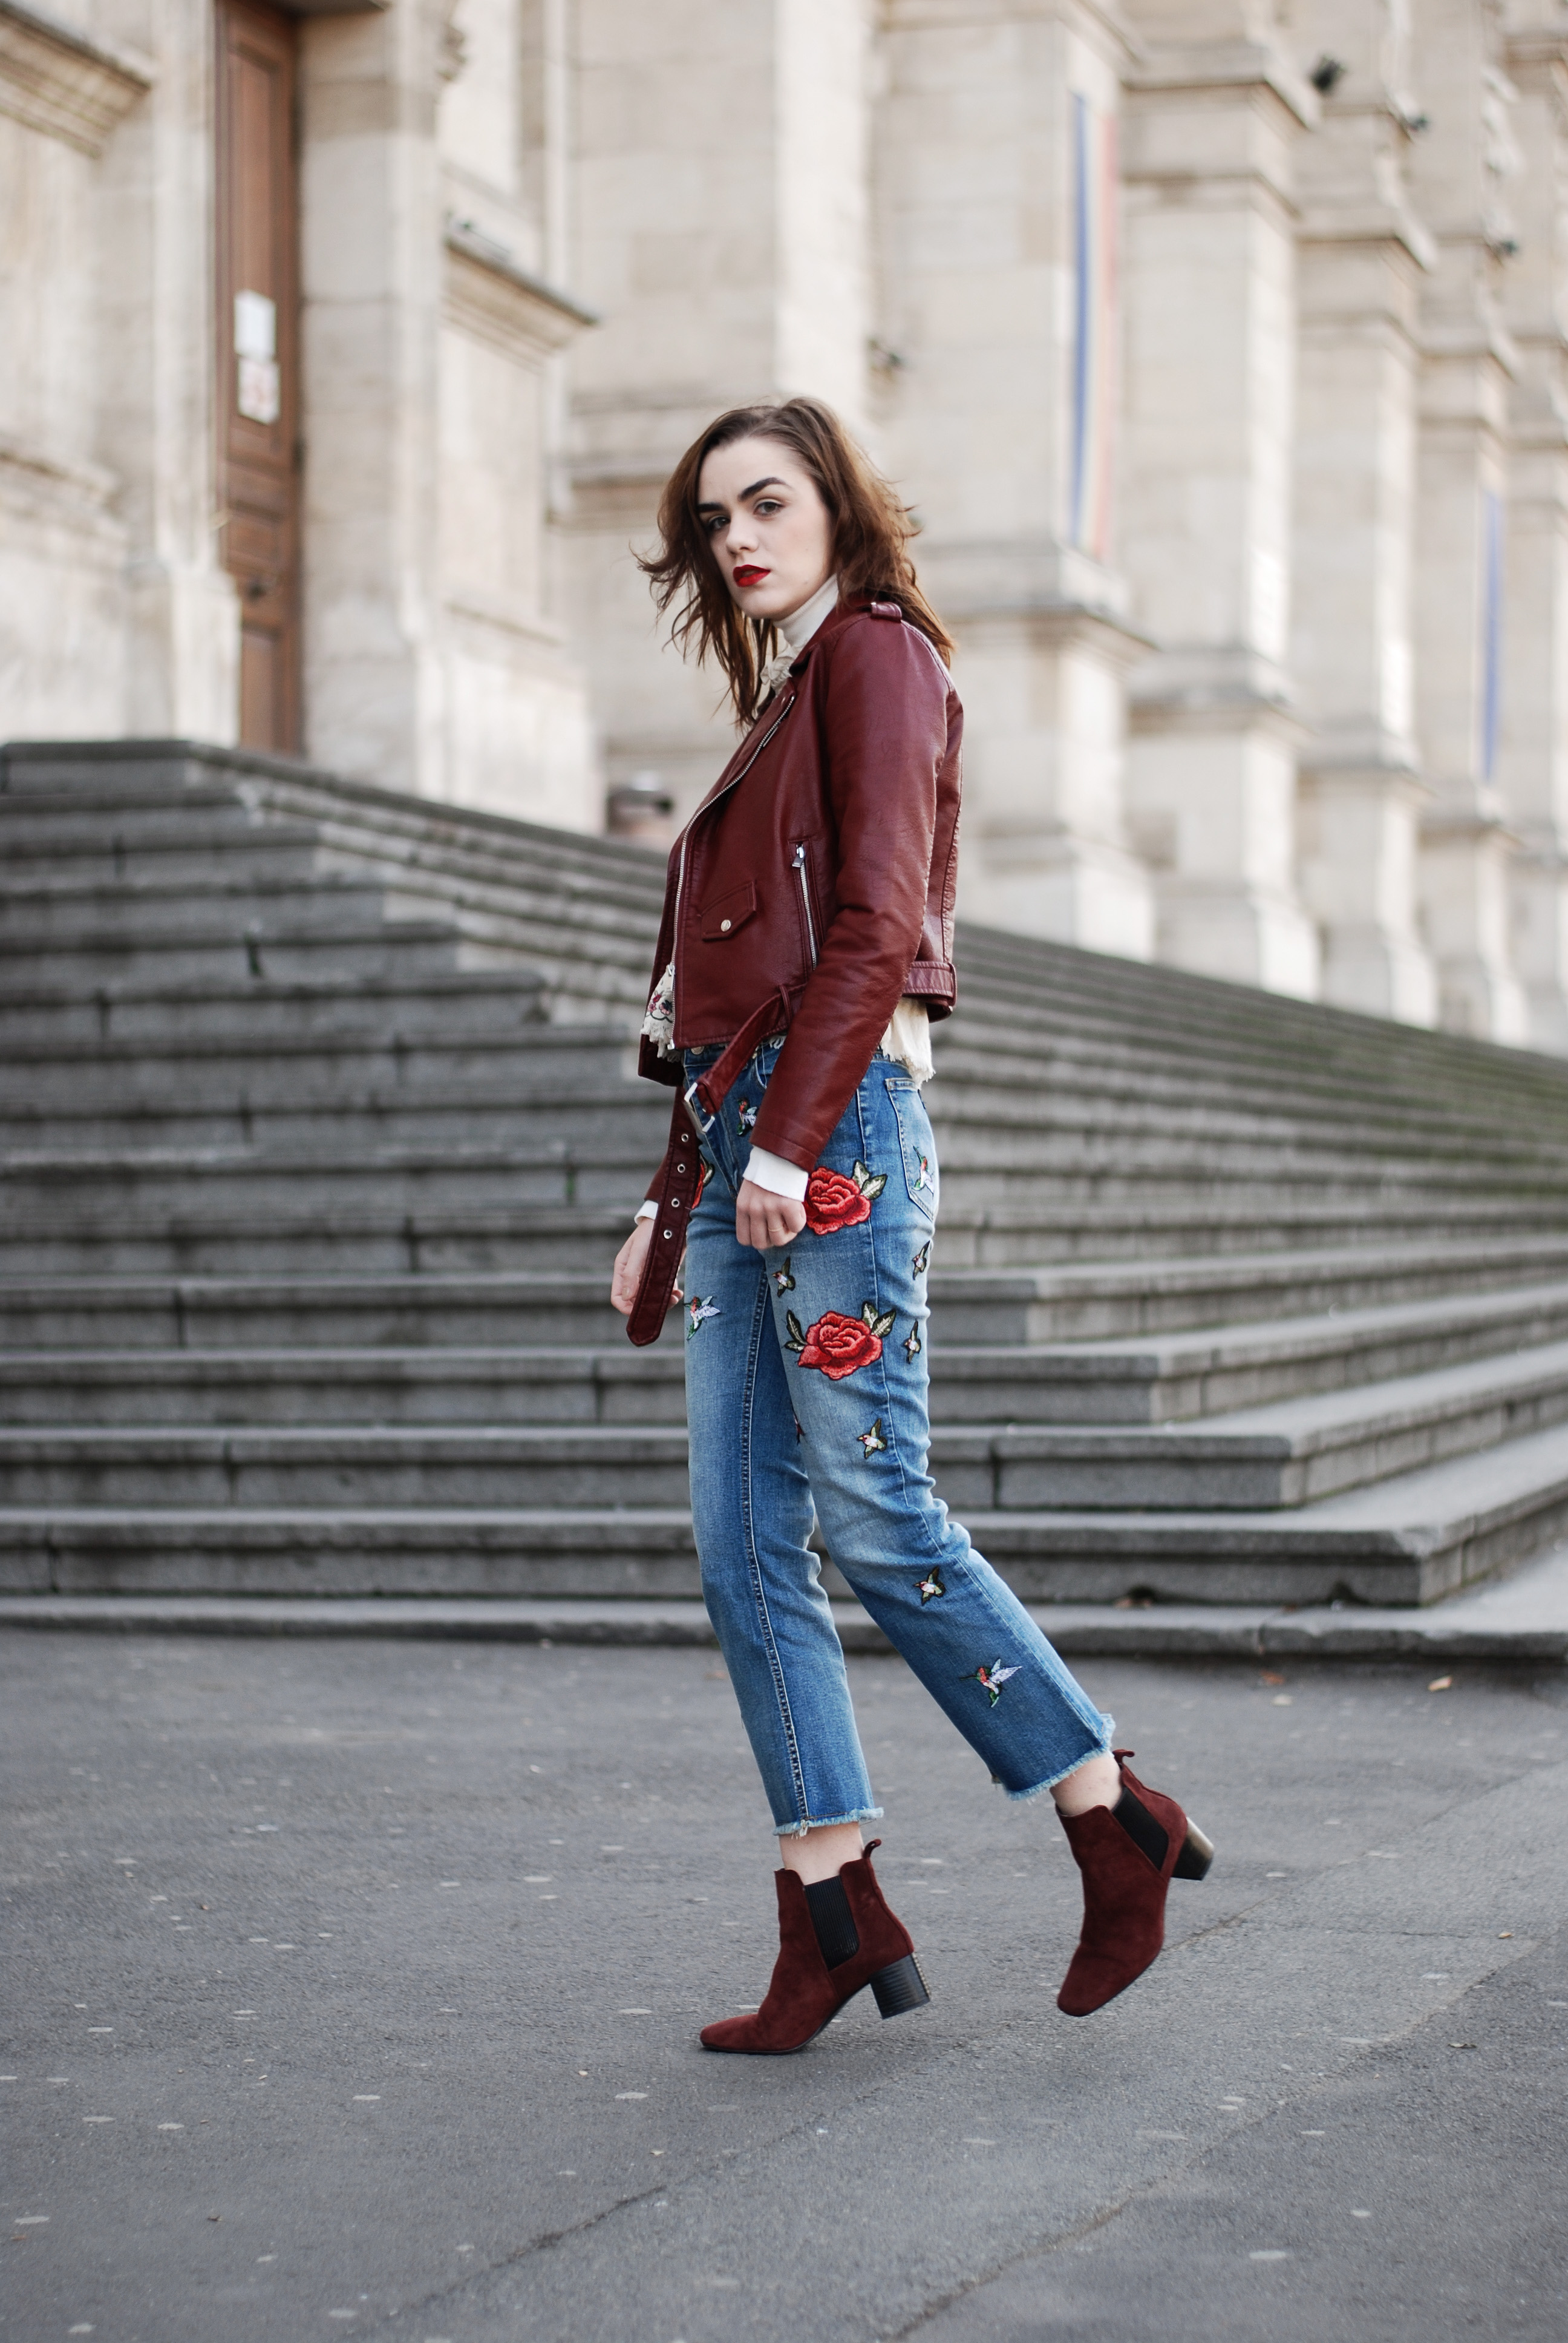 How a pair of embroidered jeans can elevate your outfit